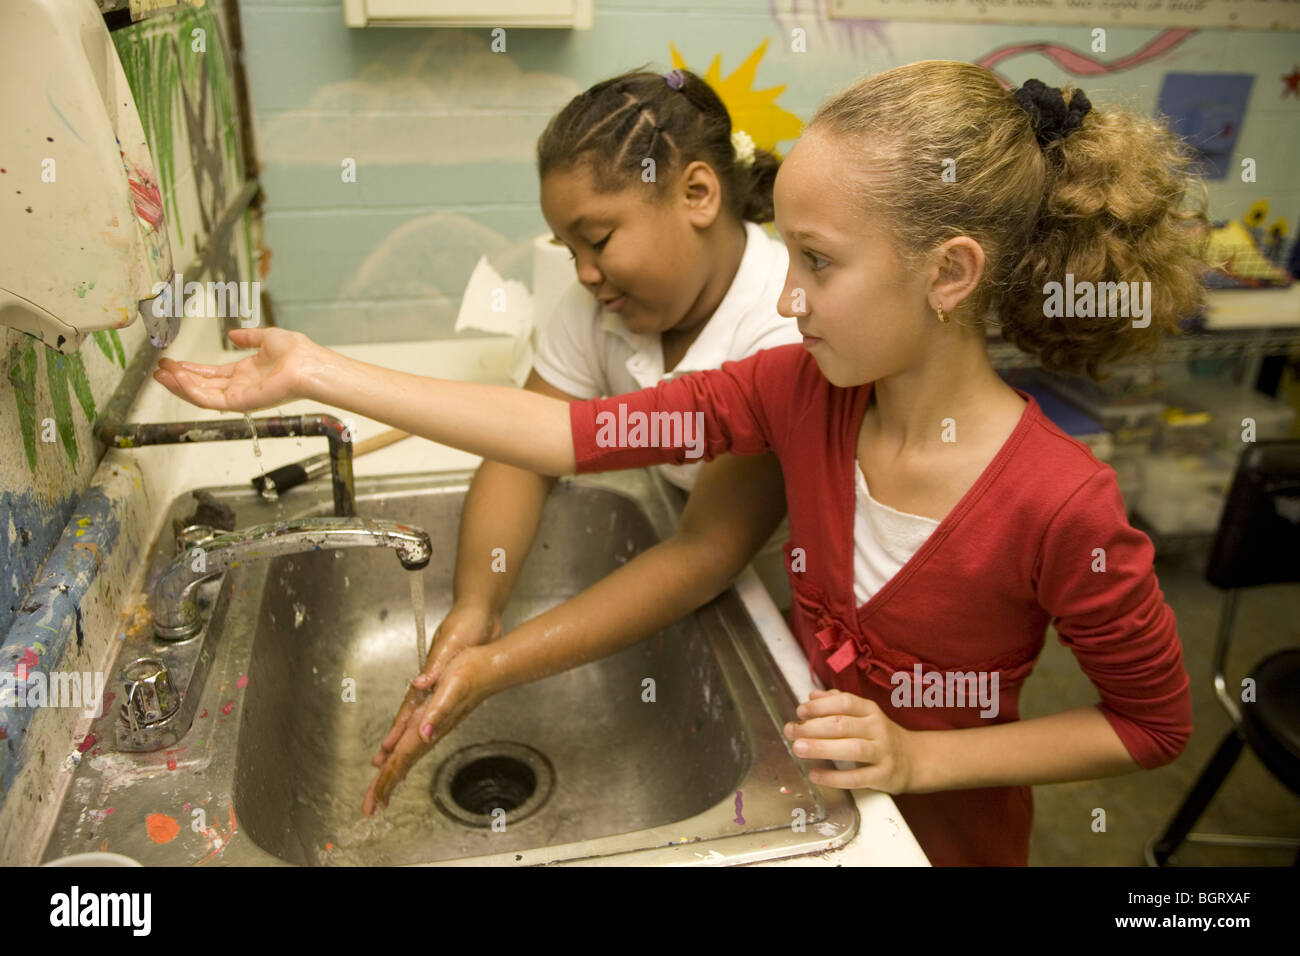 Girls wash up after an art class at an after school program at a community center in New York City. - Stock Image